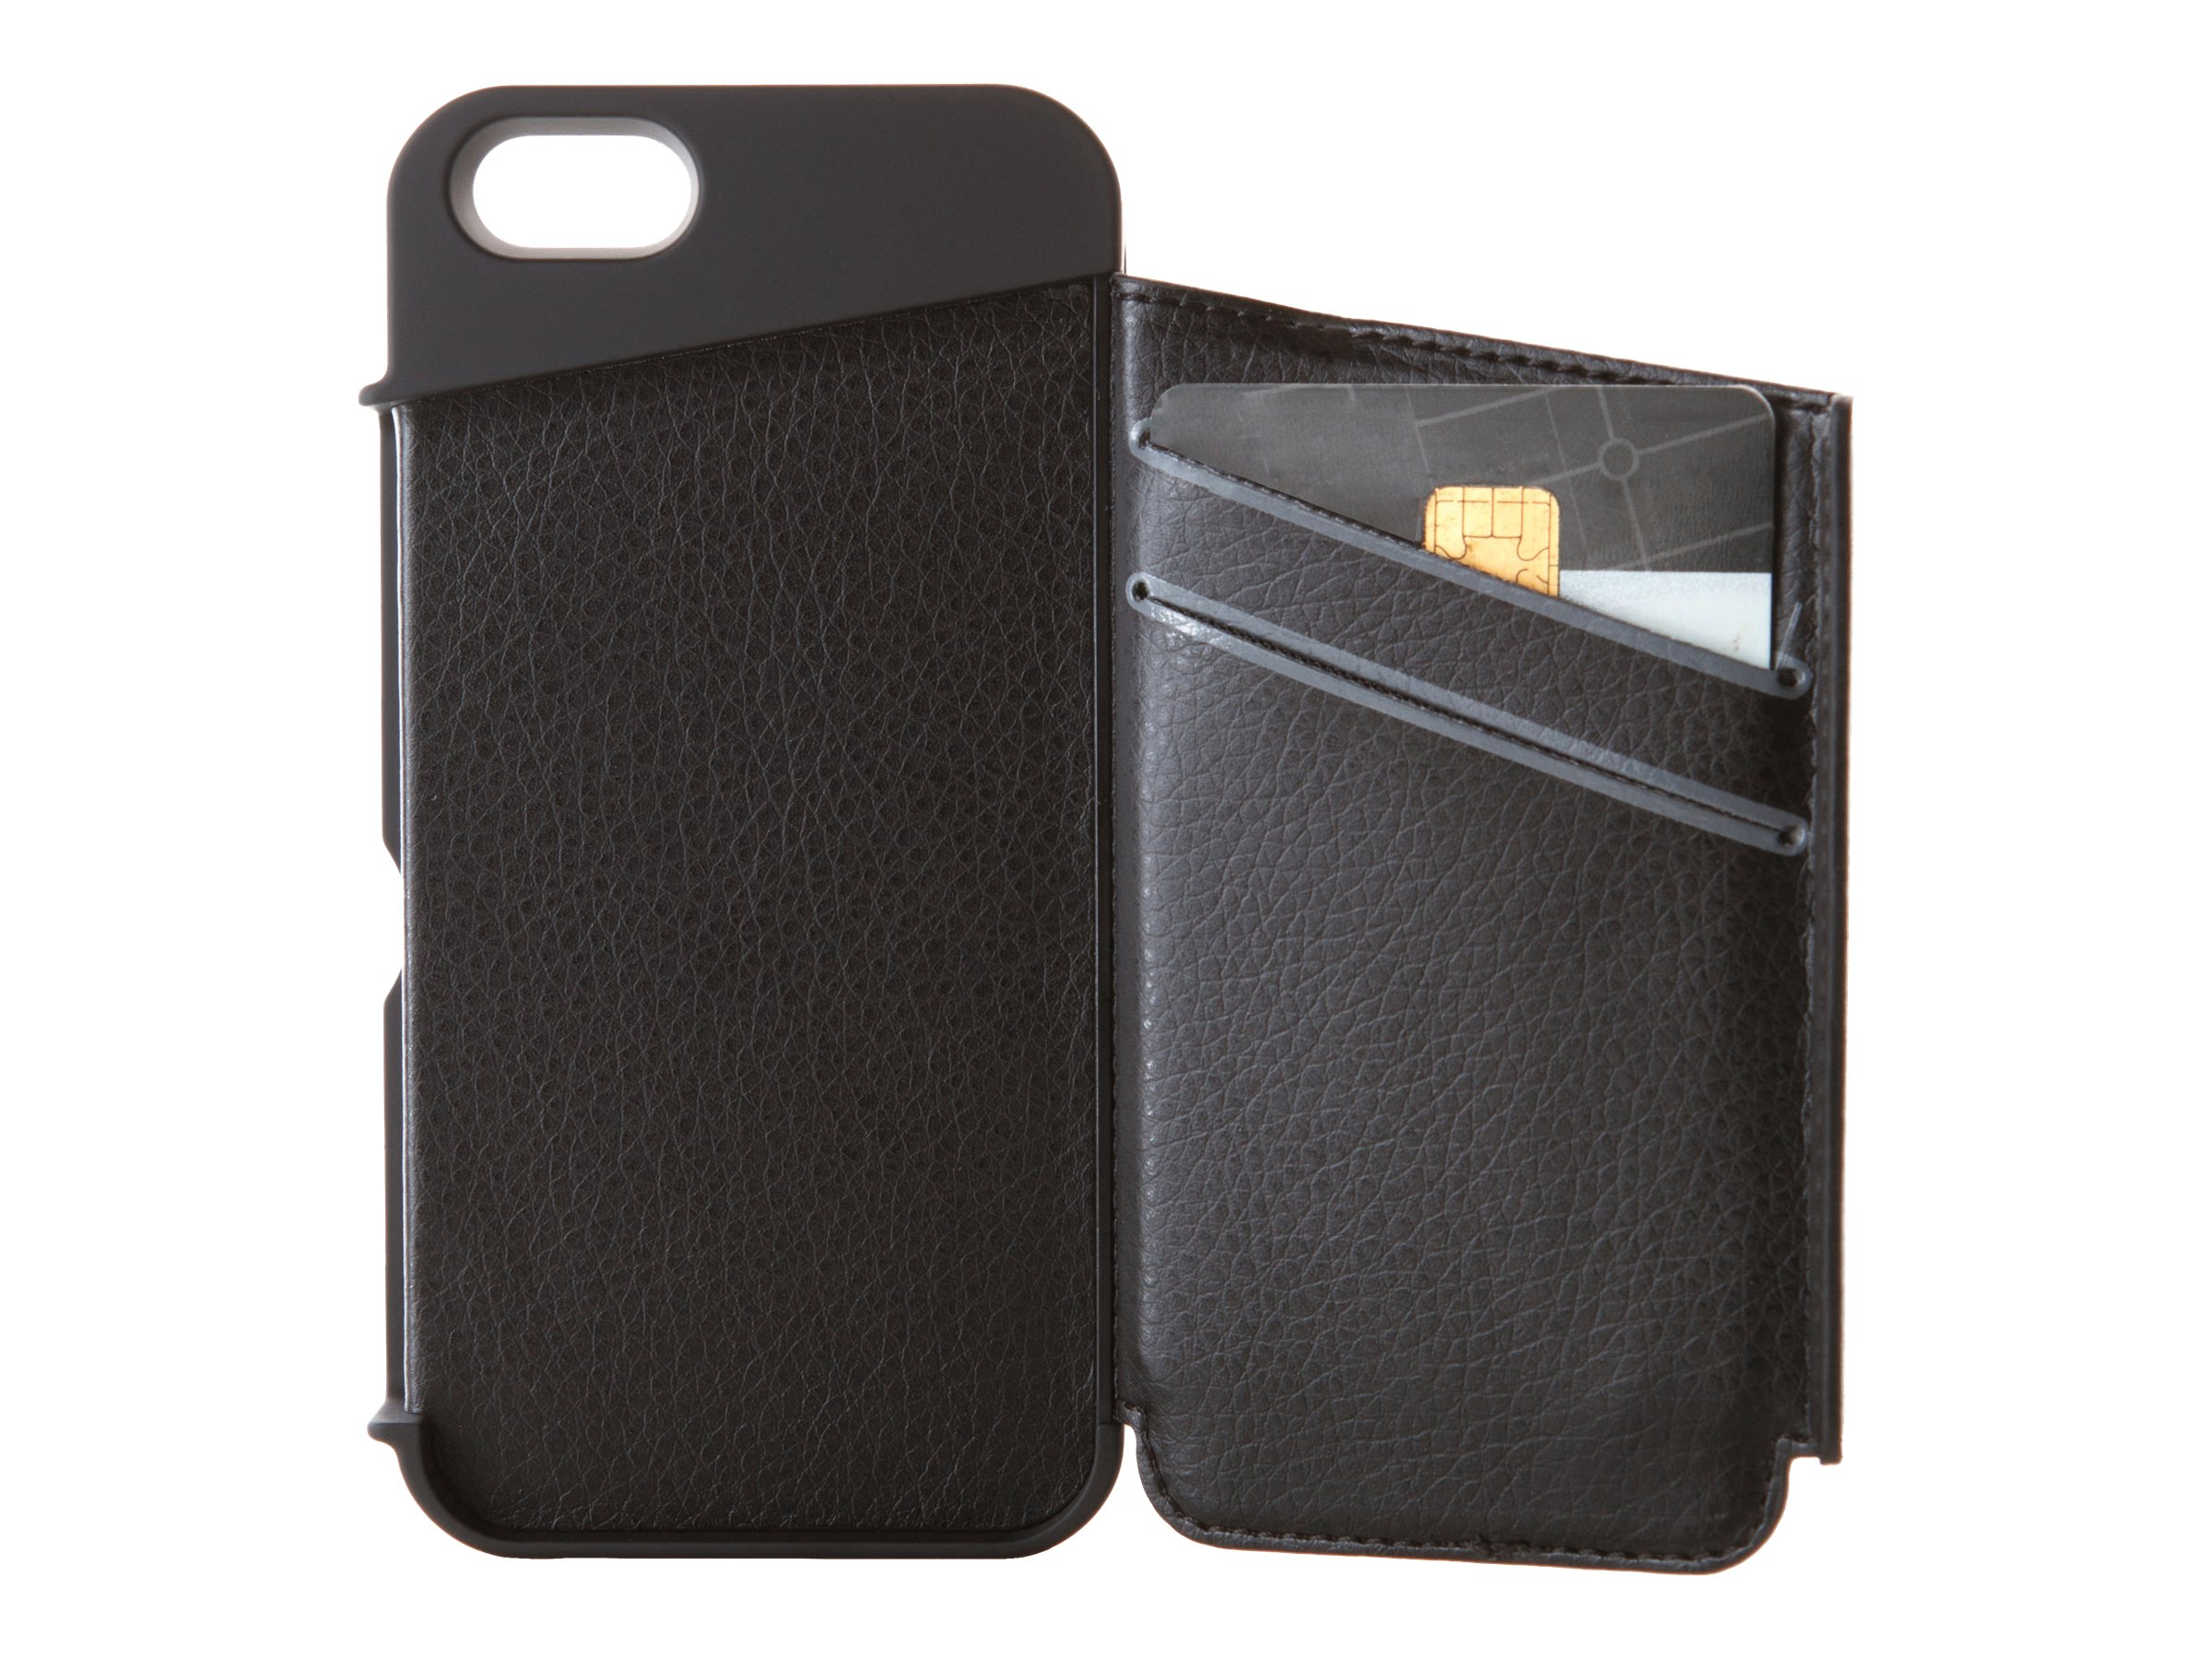 Targus Wallet Case for iPhone 5, Black, THD022US, 14765661, Carrying Cases - Phones/PDAs